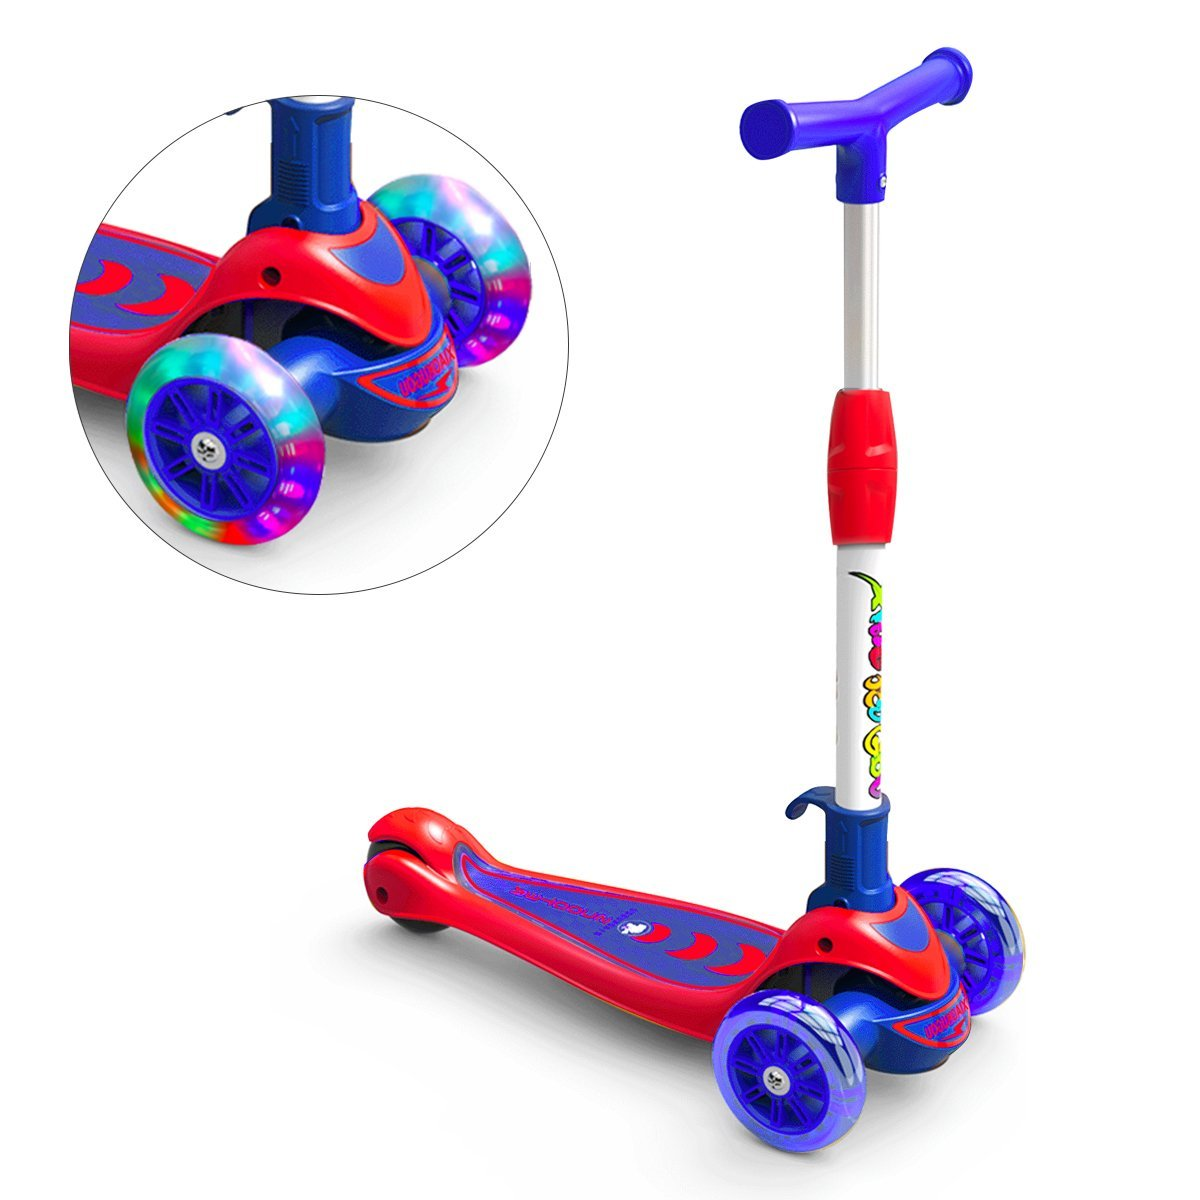 Greentest Scooter Foldable and Adjustable Height Lean to Steer 3 Wheel Scooters for Toddler Kids Boys Girls Age 3-8 (Blue)